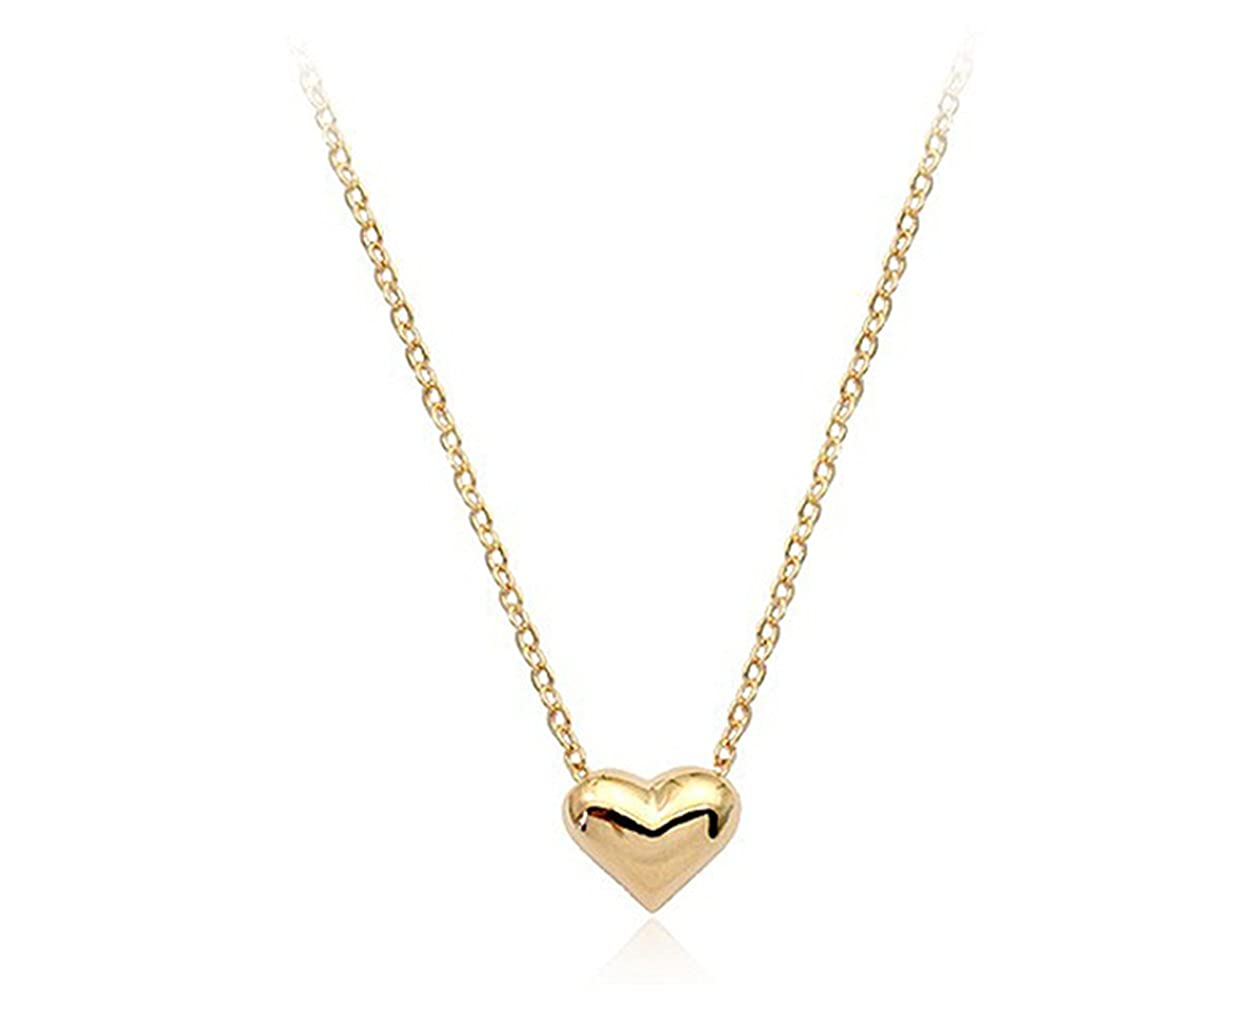 555c5e9656d2 Amazon.com  Rigant Simple Small Smooth Heart Pendant Necklace Fashion  Jewelry for Women (Gold)  Jewelry